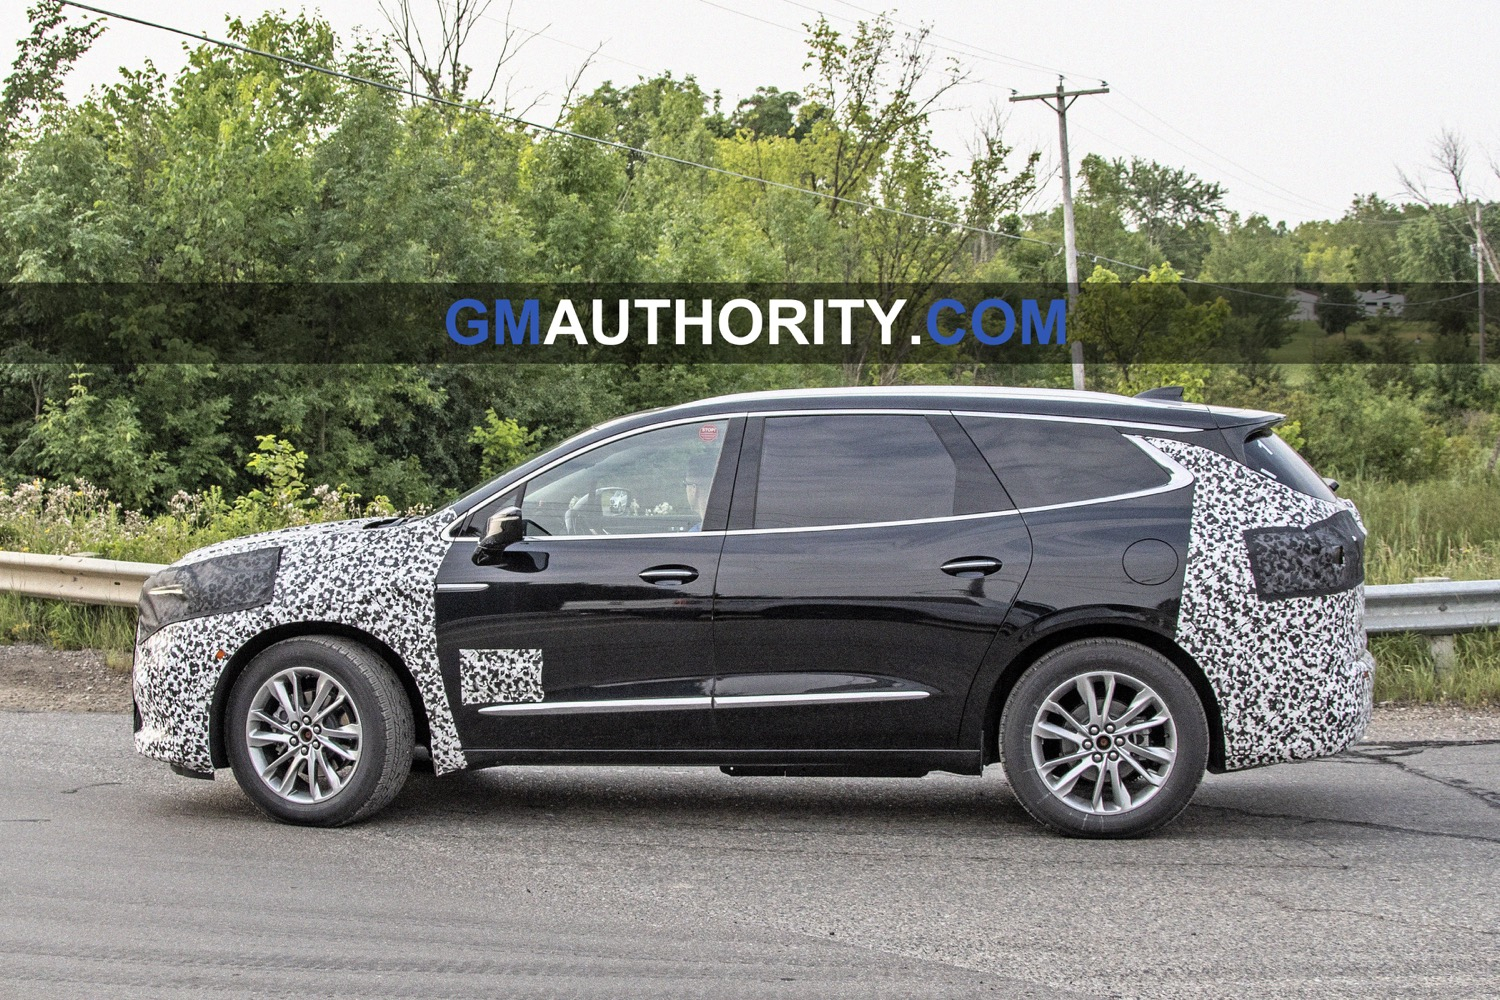 Buick Enclave Refresh Pushed Back To 2022 | Gm Authority New 2022 Buick Enclave Price, Reviews, Interior